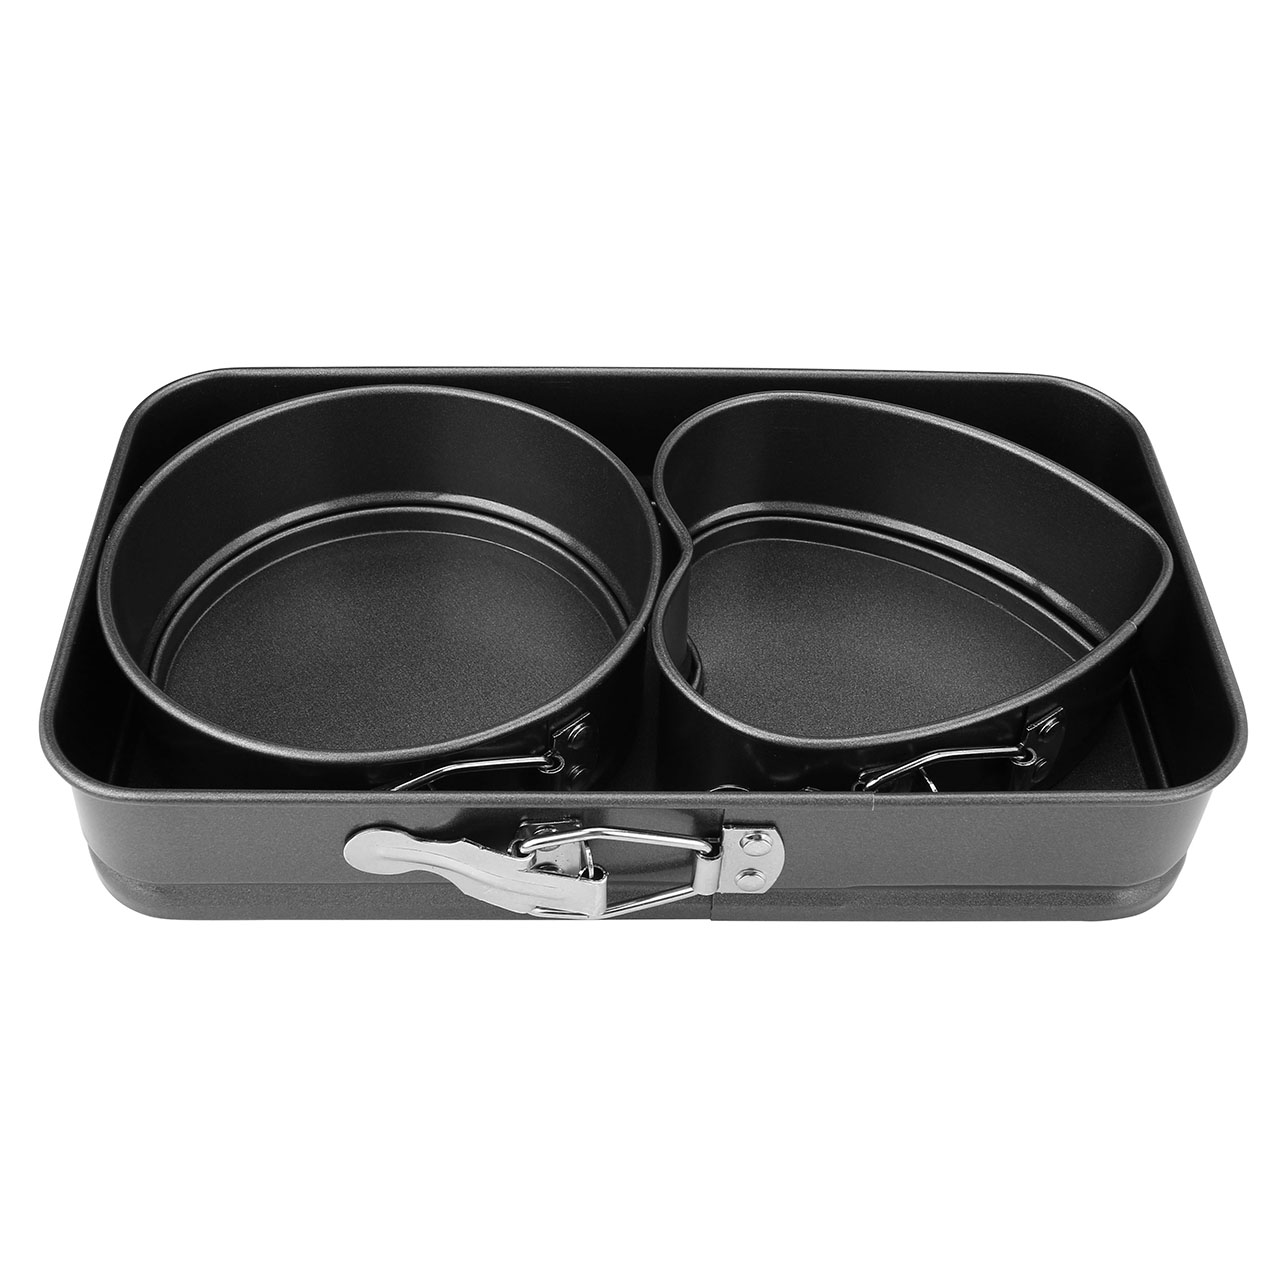 ACBungji 3pcs Non-Stick Springform Pan/Cheesecake Pan/Leakproof Cake Pan Bakeware Set (Mini)